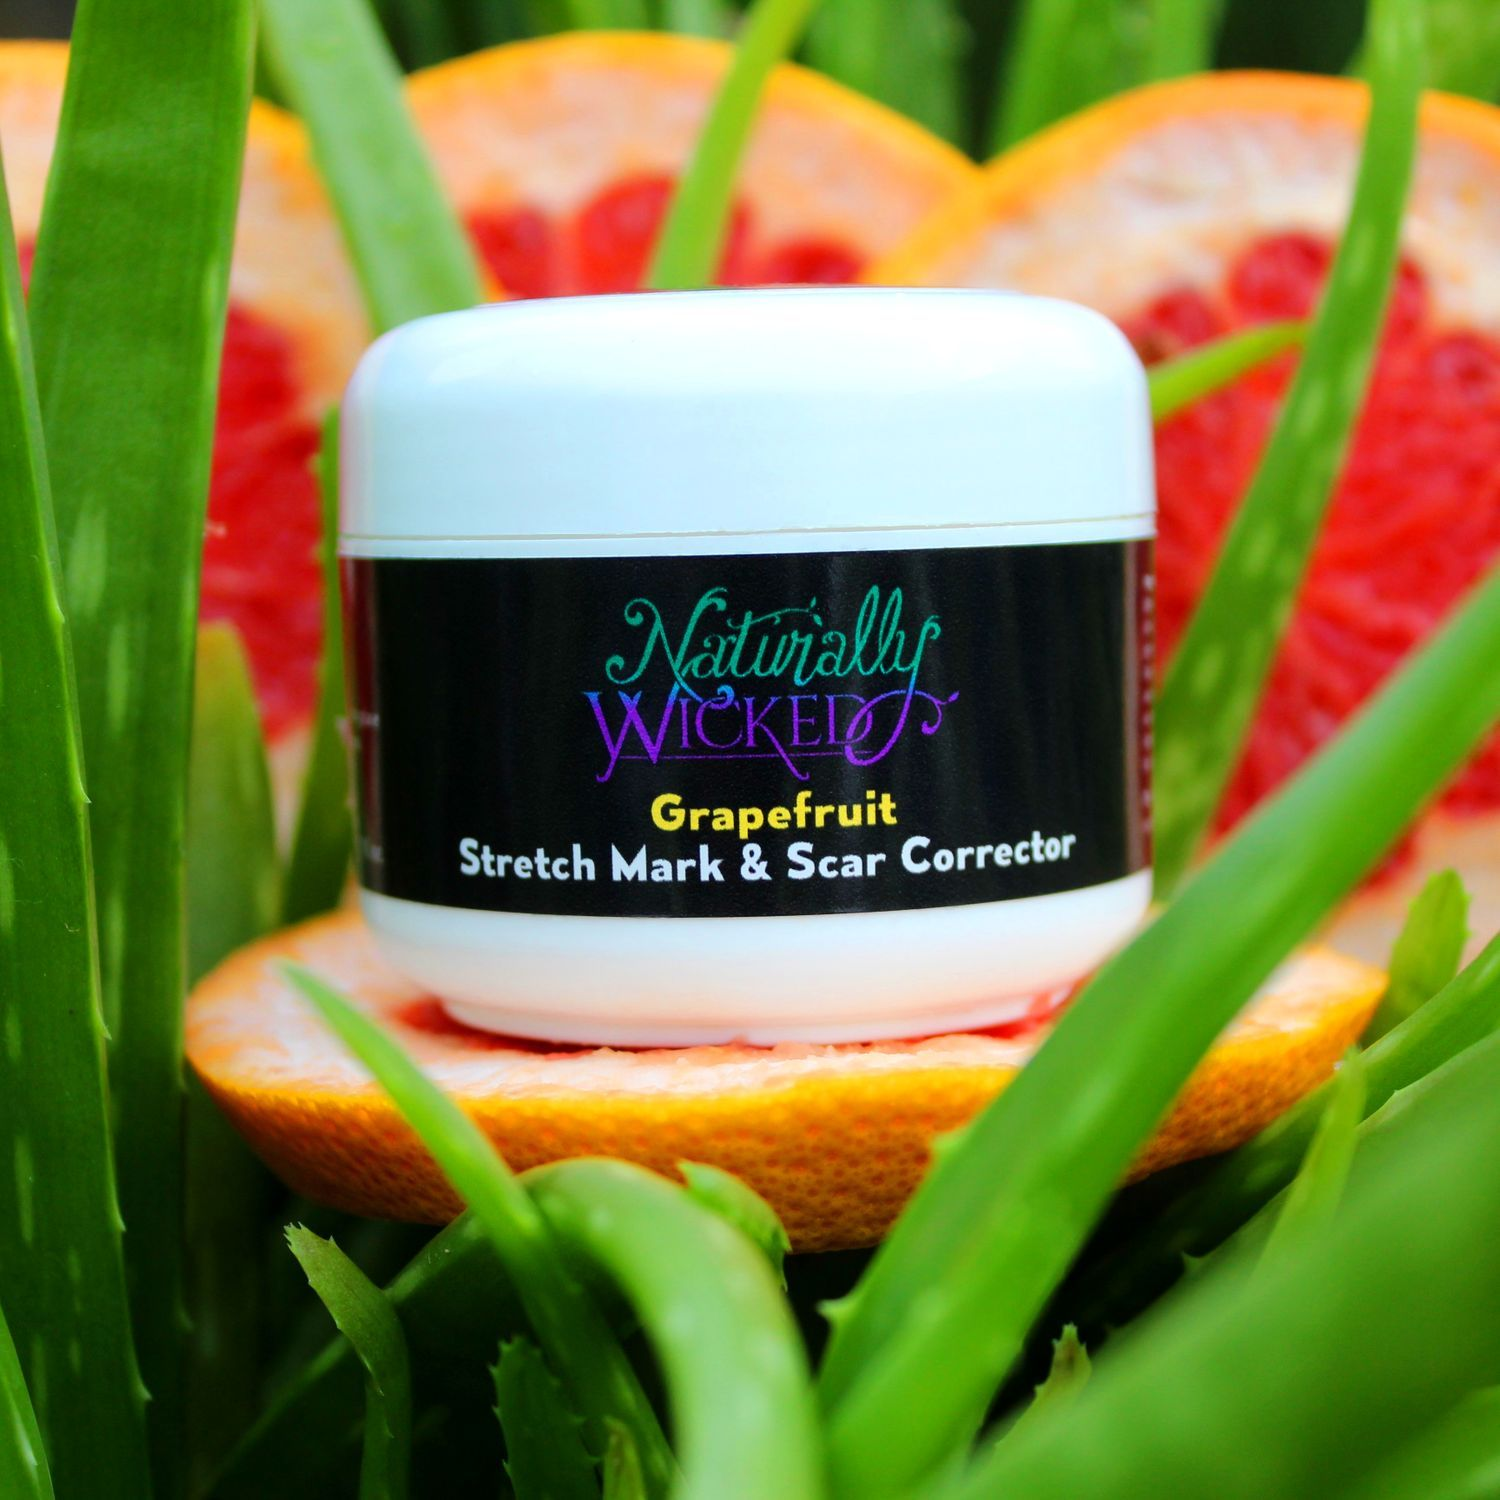 Naturally Wicked Stretch Mark & Scar Corrector Sat In Green Aloe Vera On Top Of Bright Pink Grapefruit With Orange Skin